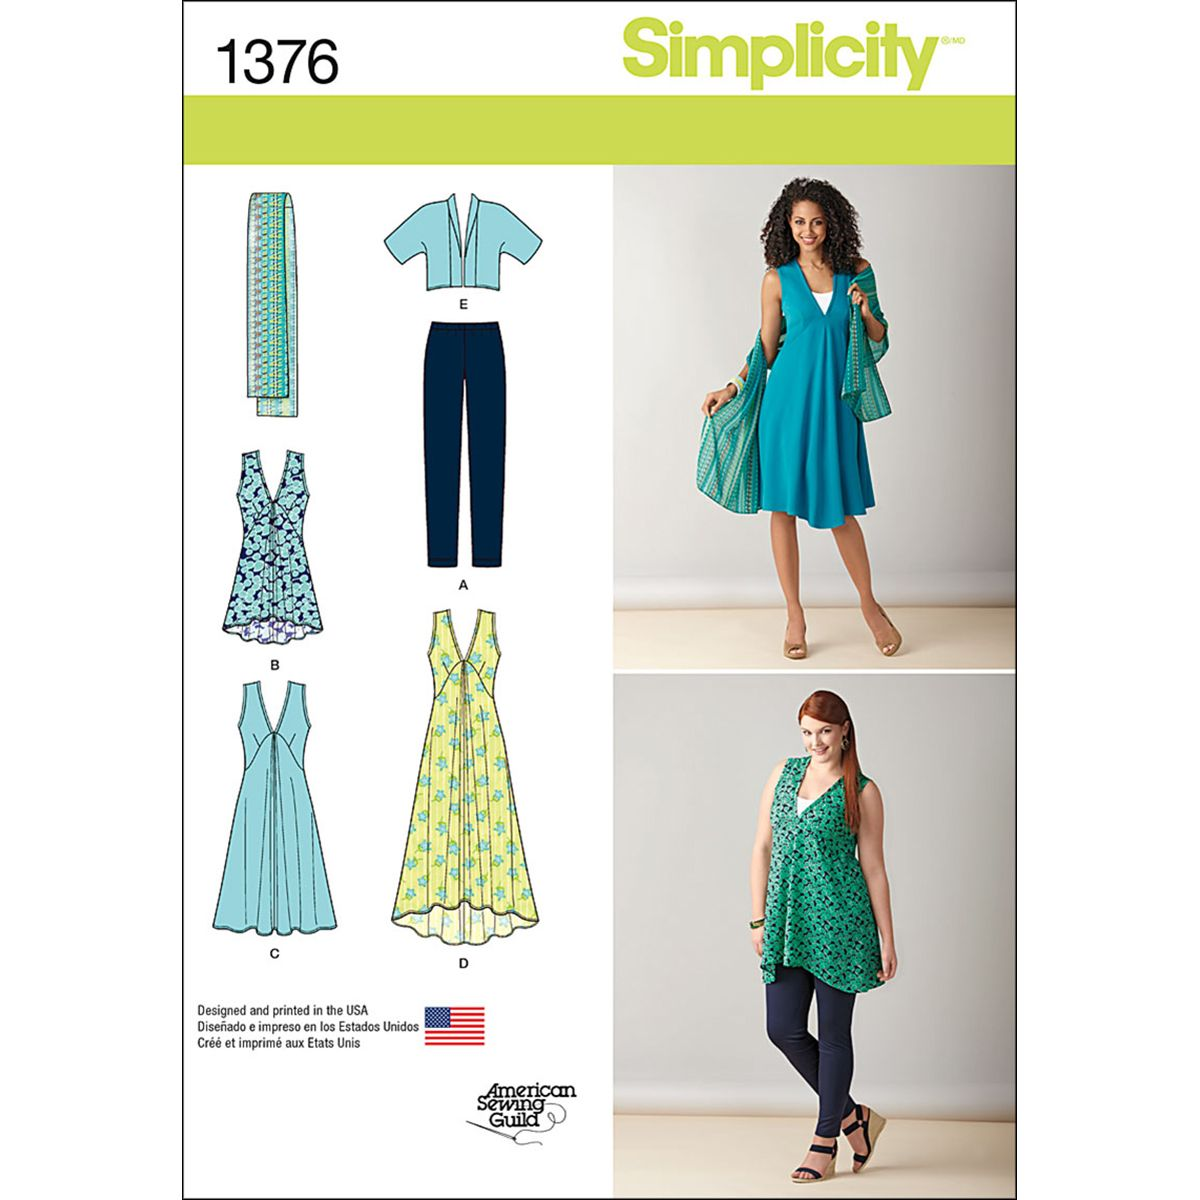 Simplicity pattern 1376bb 20w 28w misses sportswear sewing view simplicity misses plus size jacket dress tunic scarf and leggings size bb and more of our misses patterns shop our huge selection of thread jeuxipadfo Choice Image